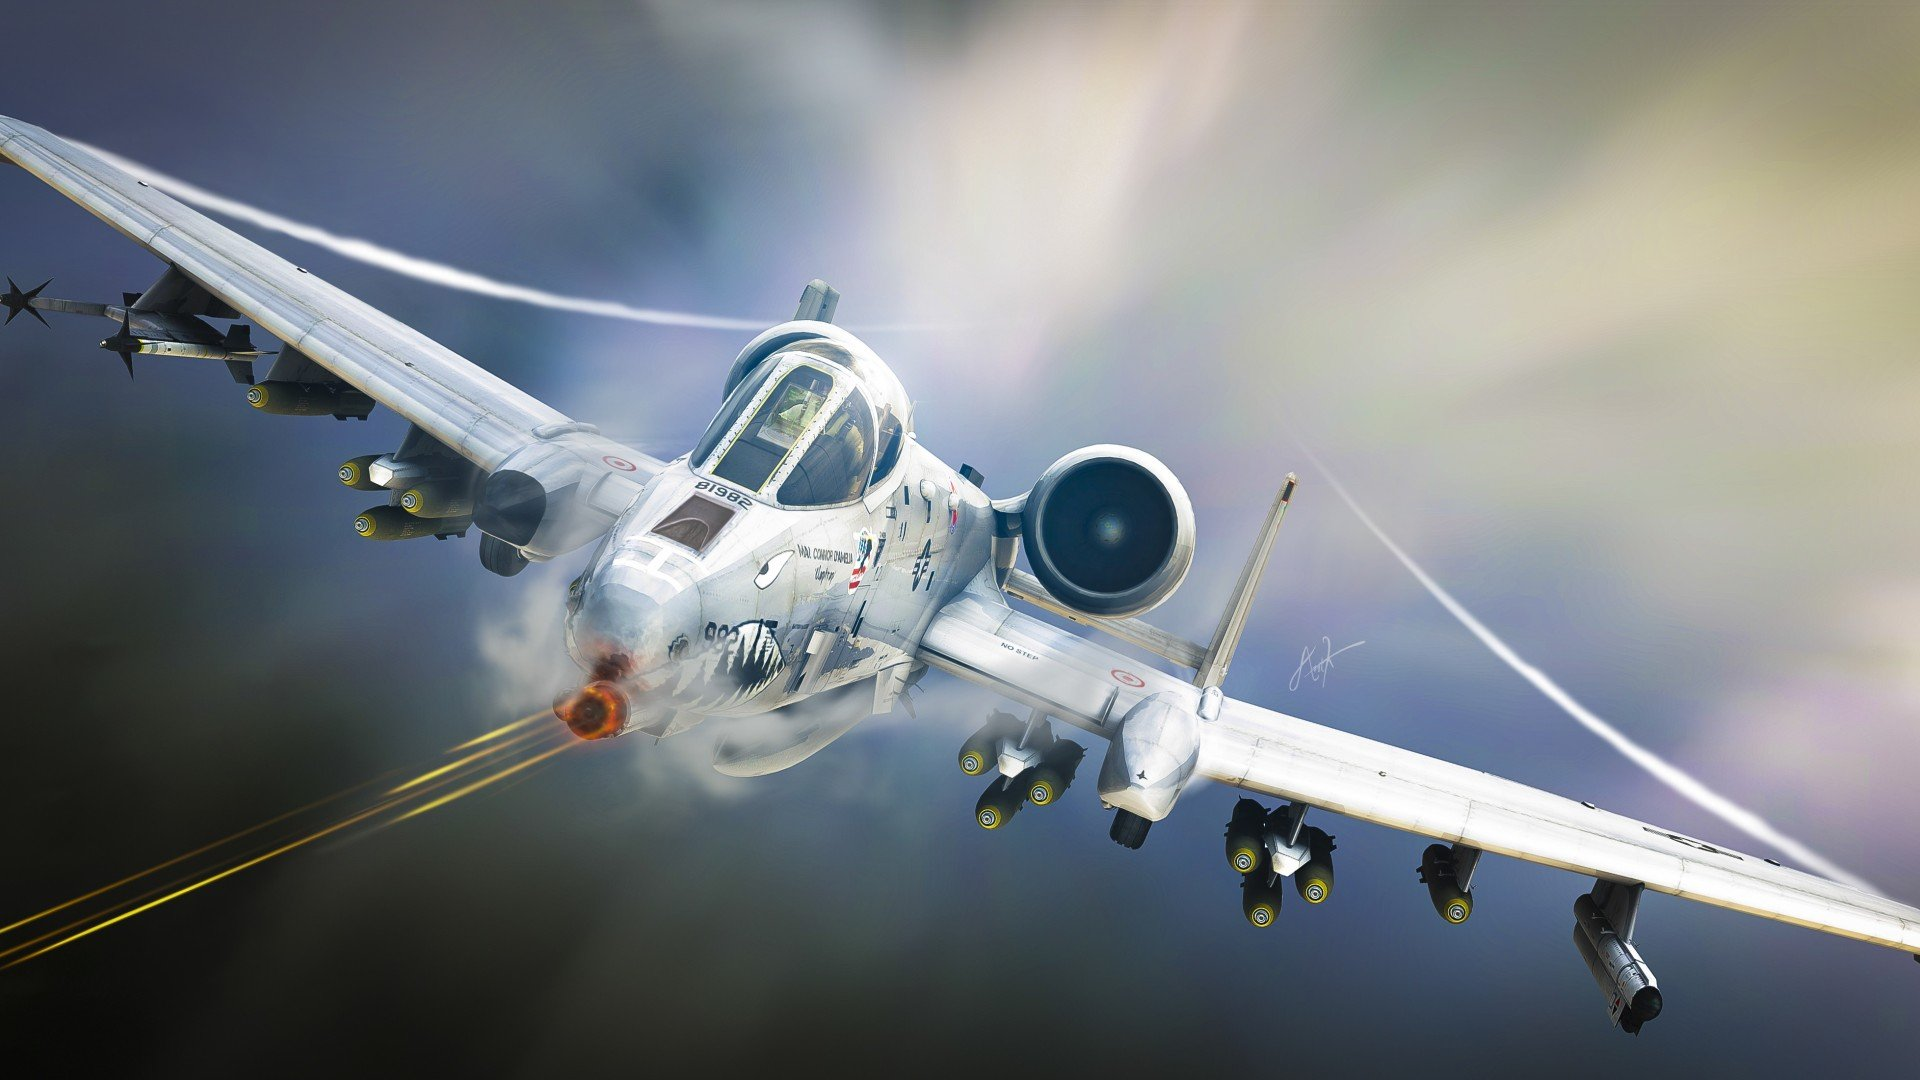 ... military airplane plane thunderbolt warthog (76) wallpaper background